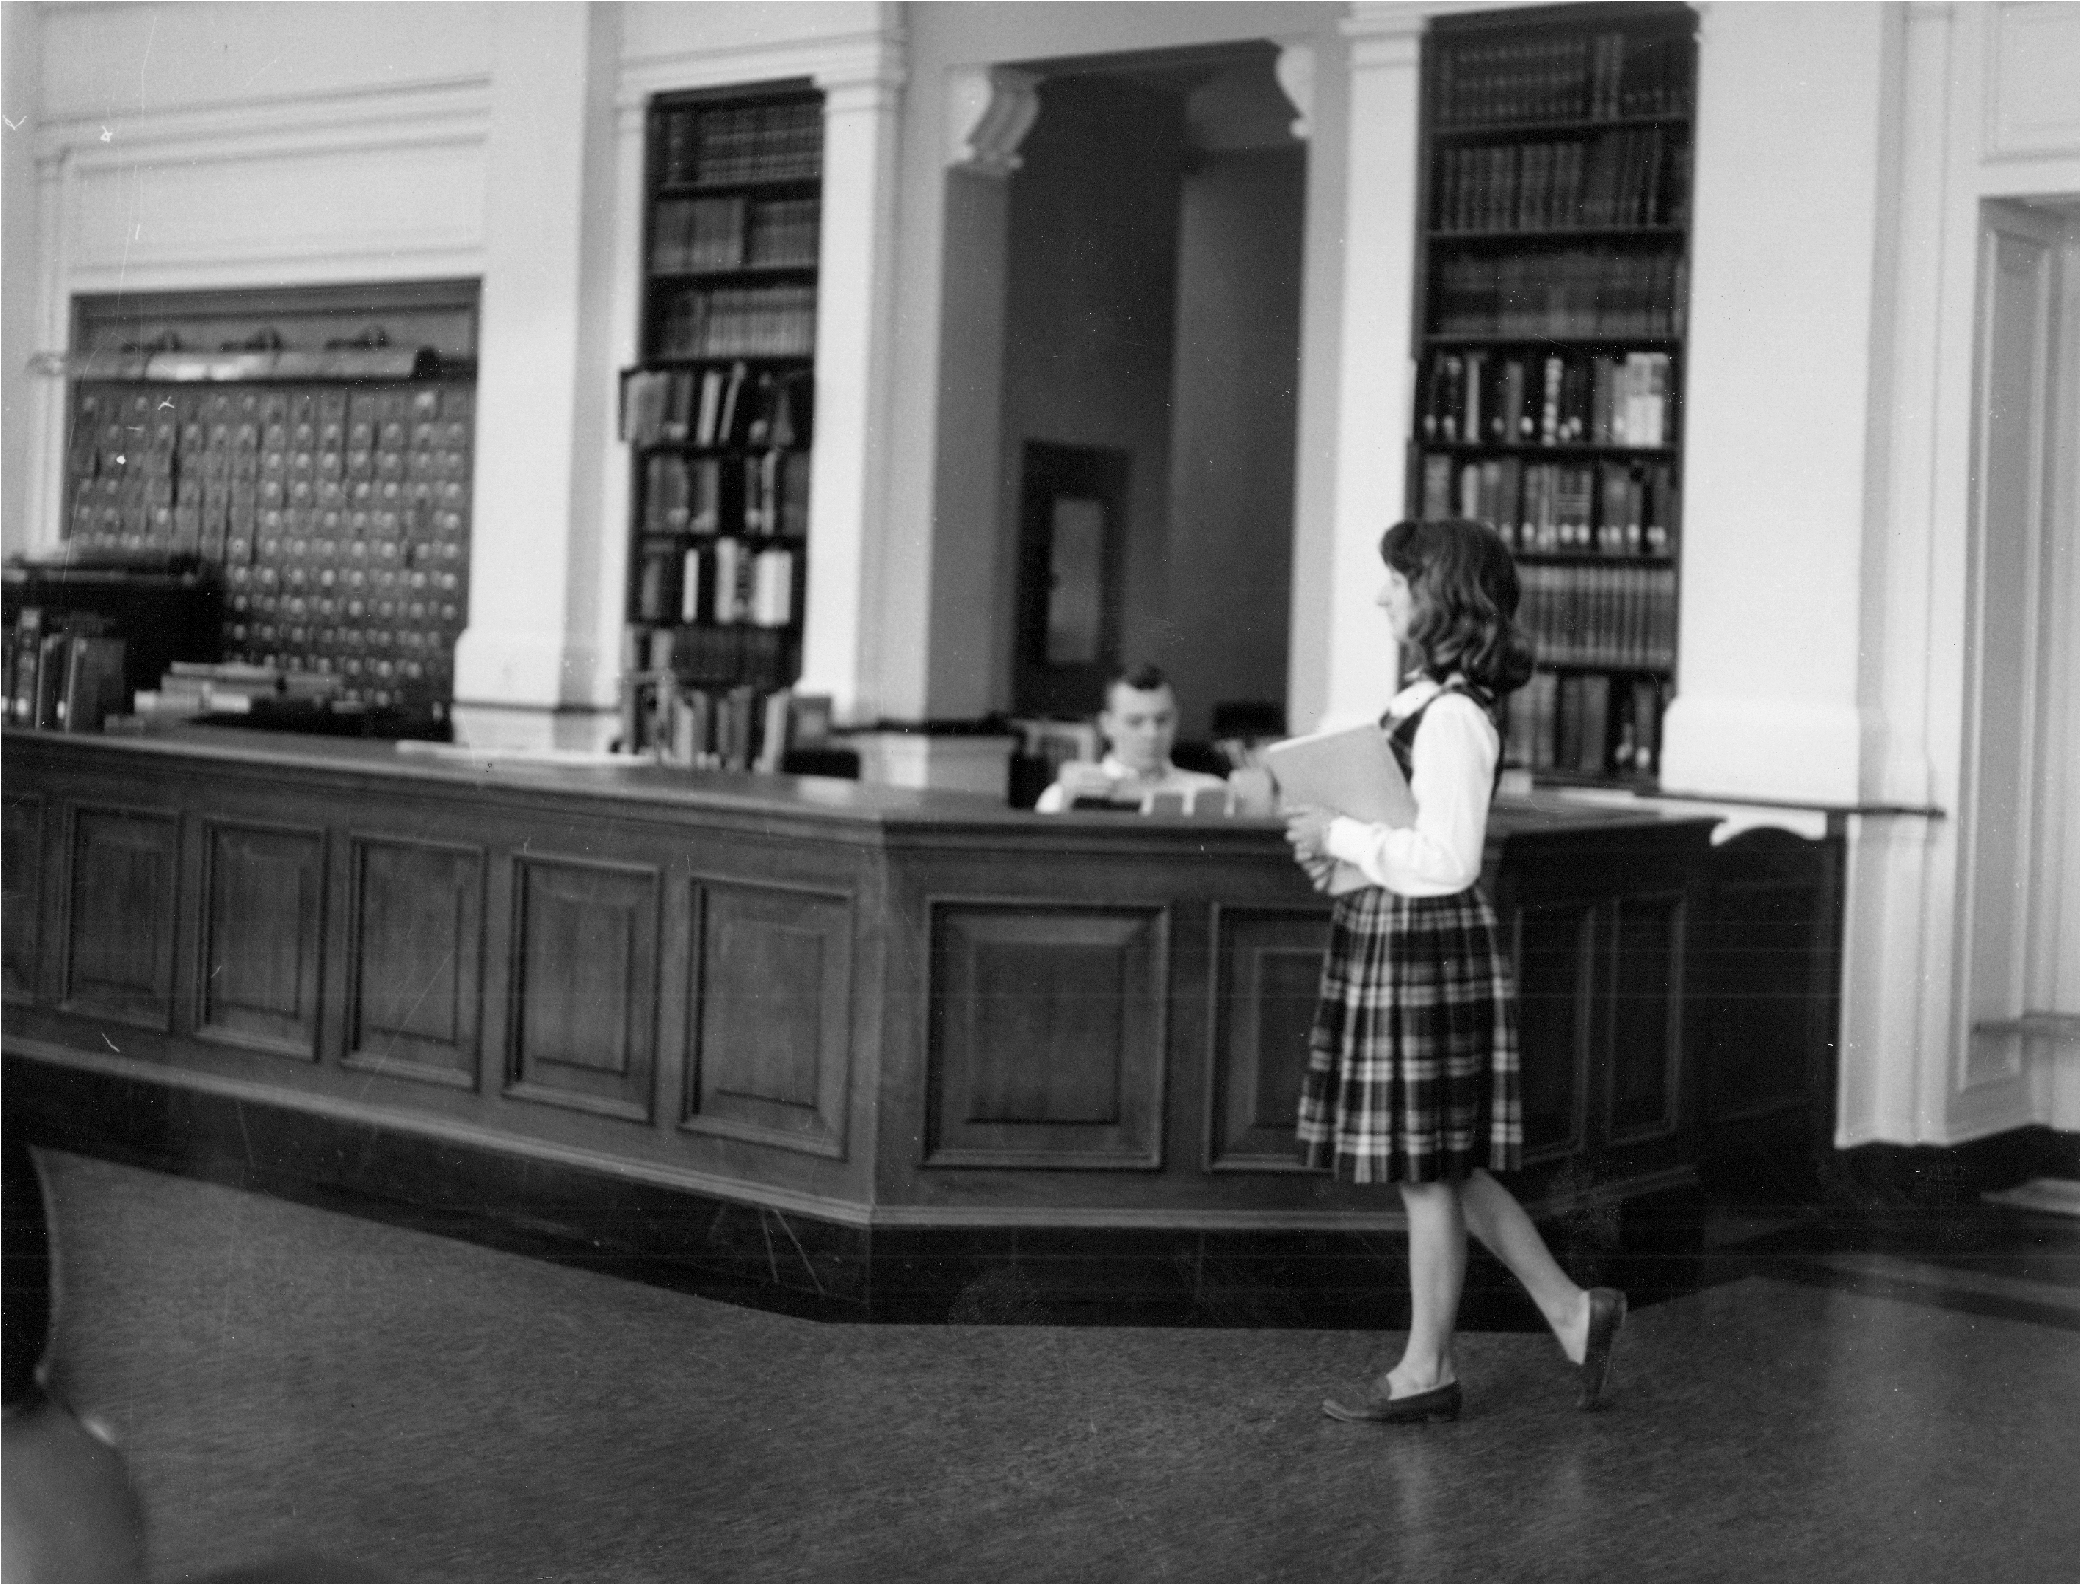 Woman walking in front of Morrow Library circulation desk.